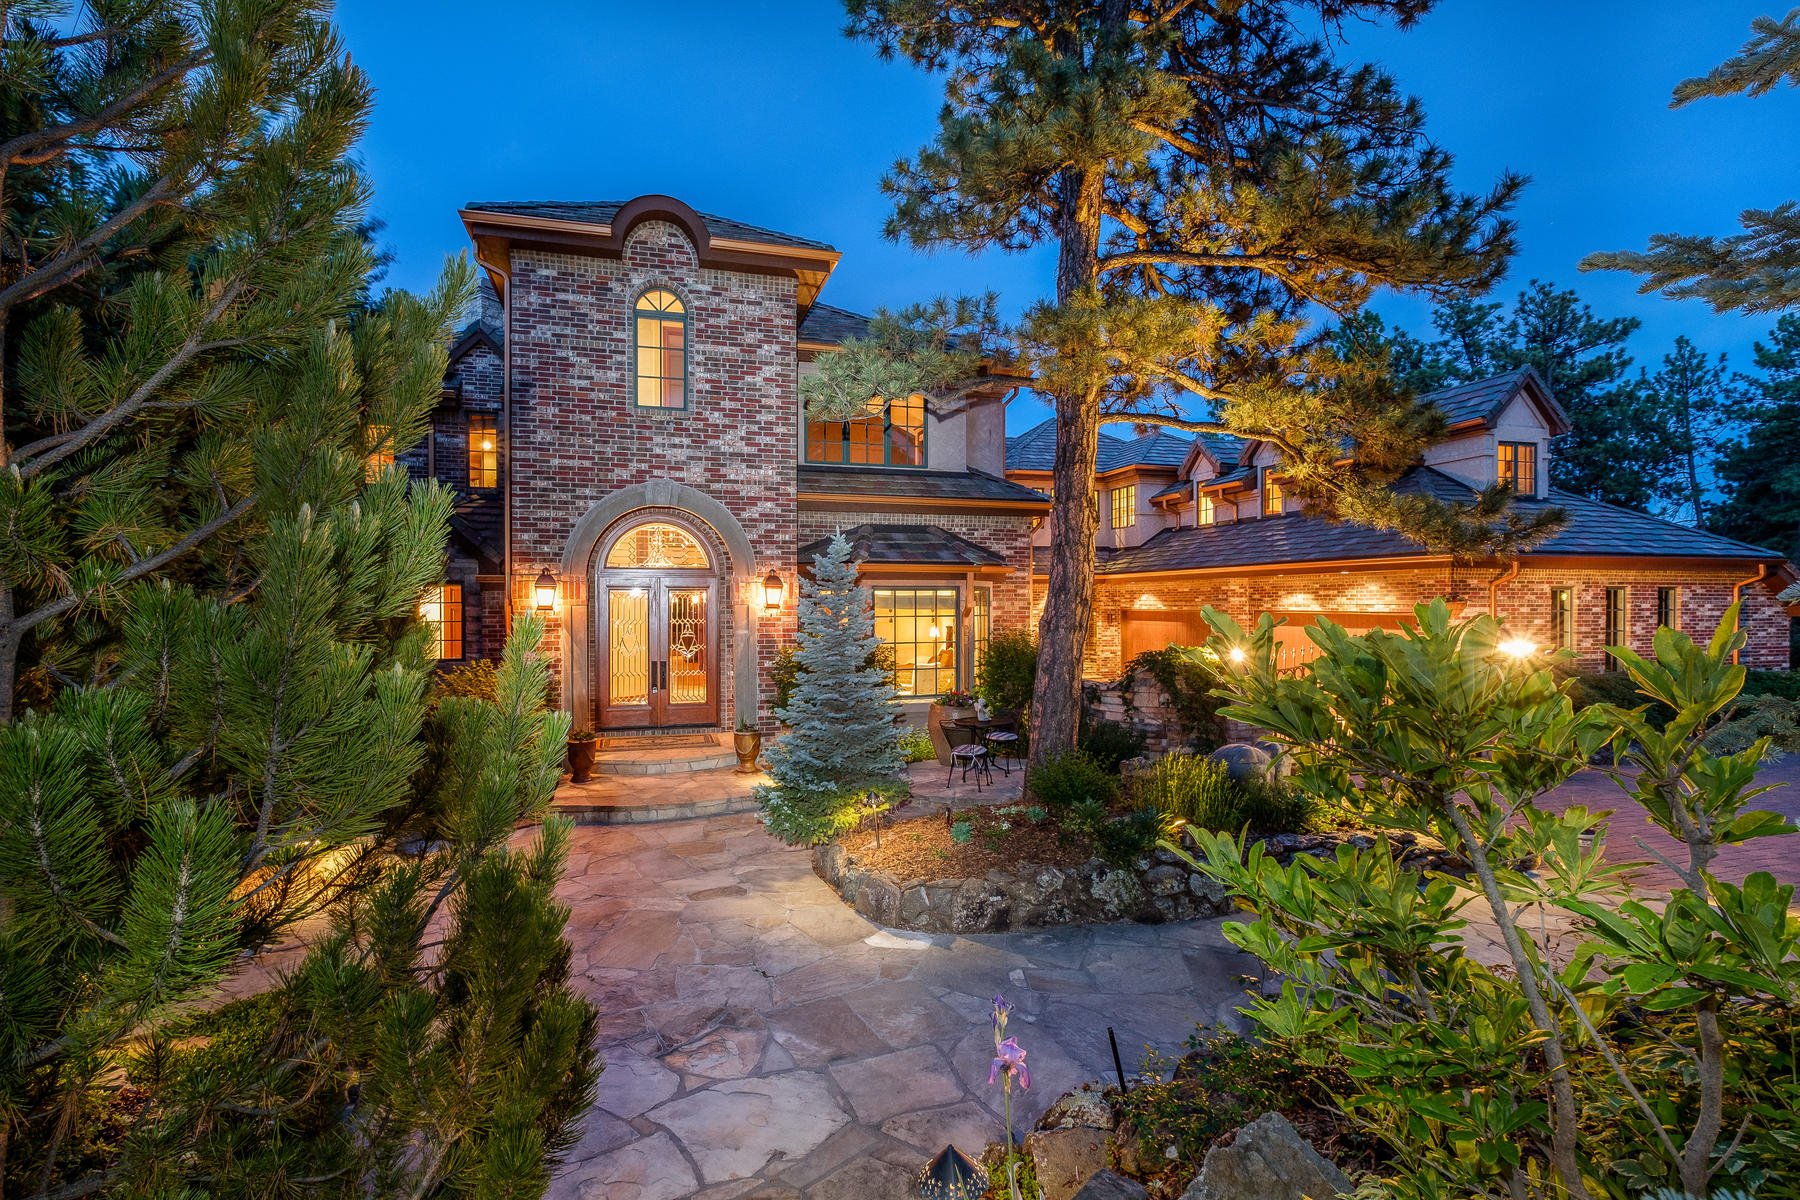 Additional photo for property listing at 77 Comstock Pl 77 Comstock Pl Castle Rock, Colorado 80108 United States